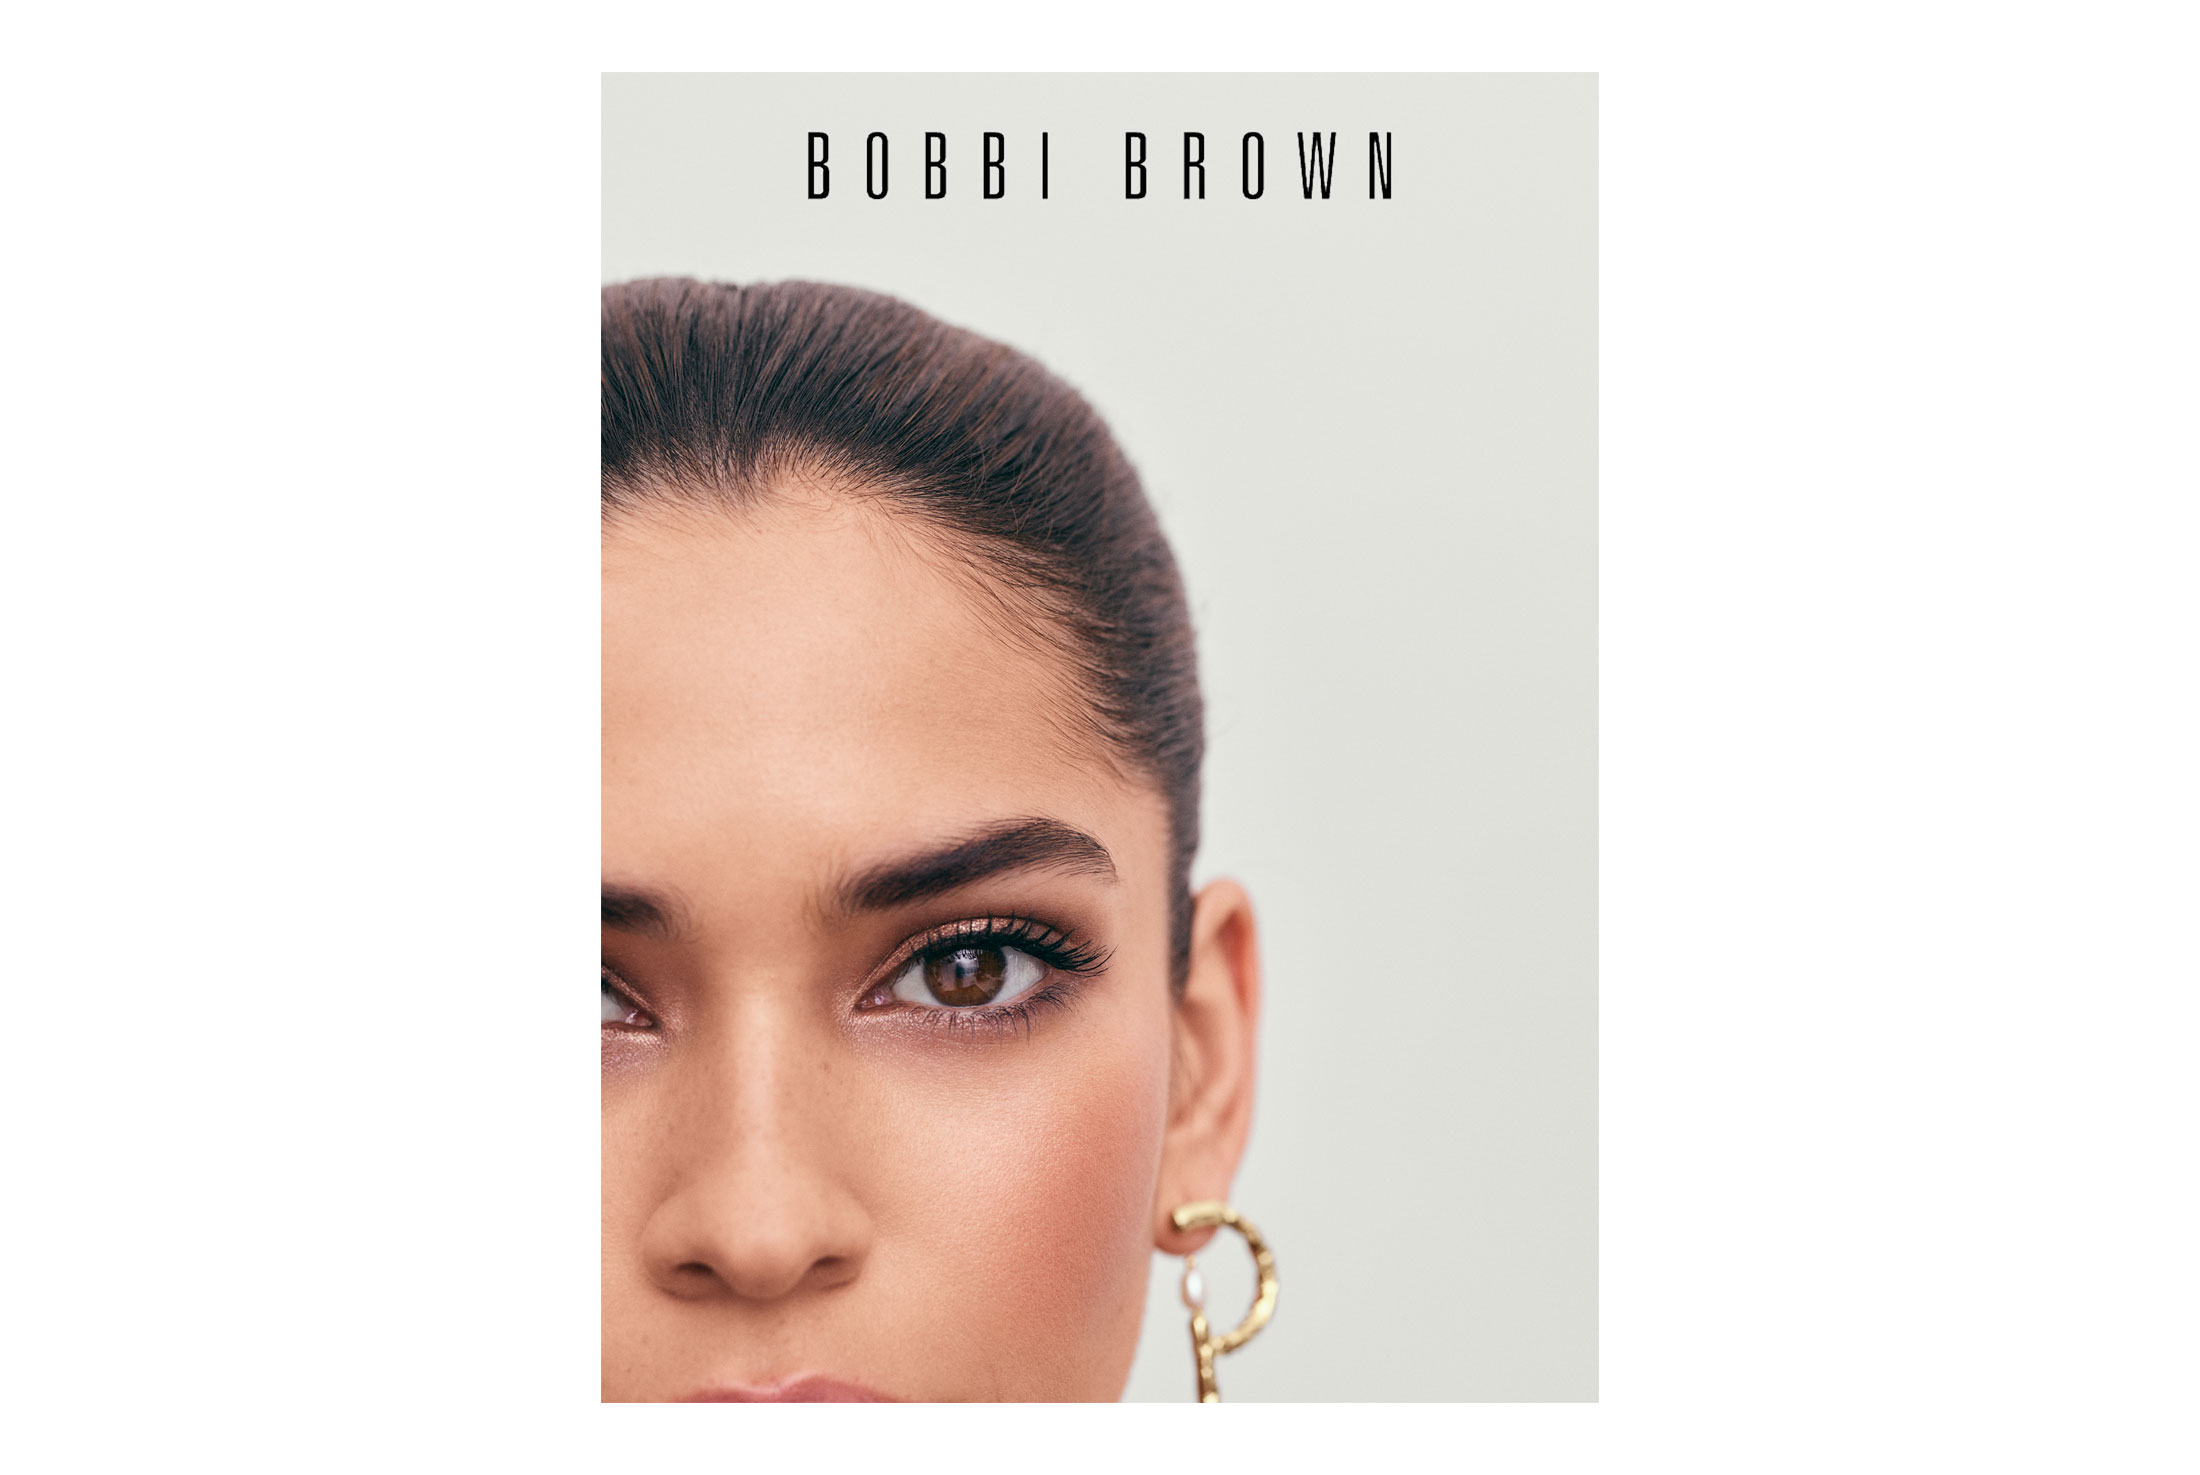 bobbibrown6